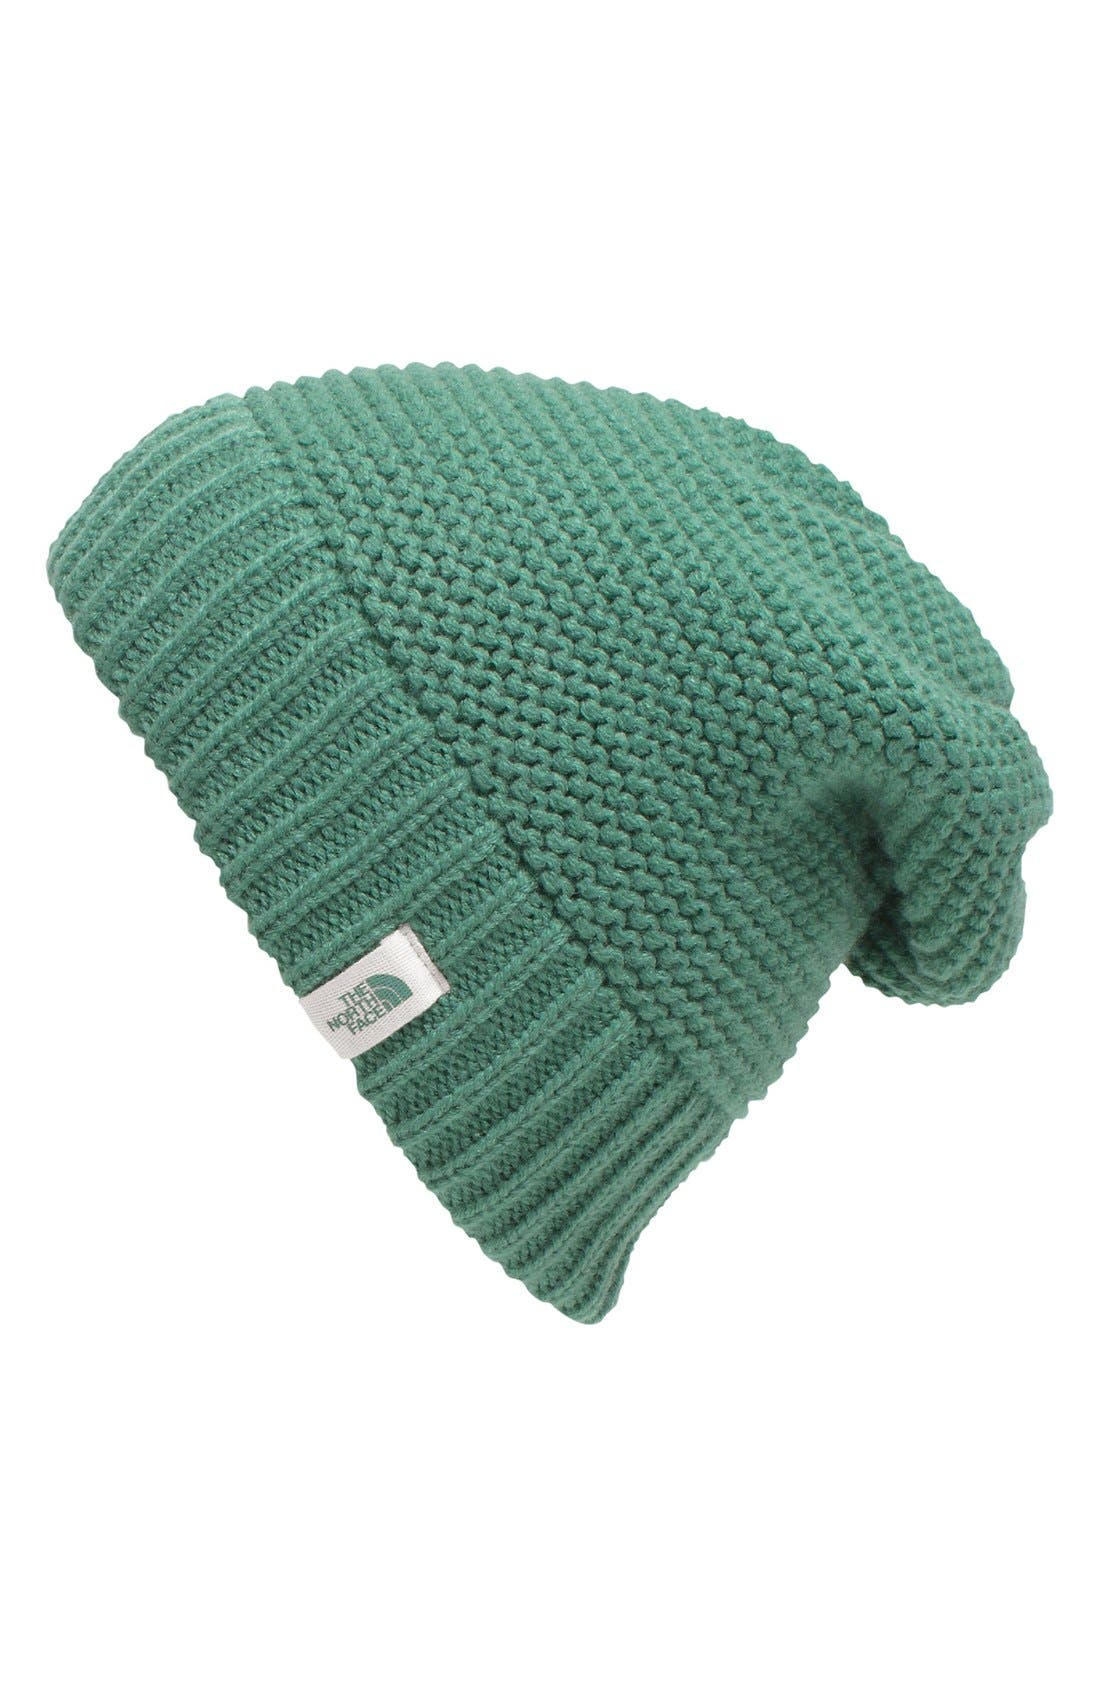 Main Image - The NorthFace 'Purrl'KnitBeanie